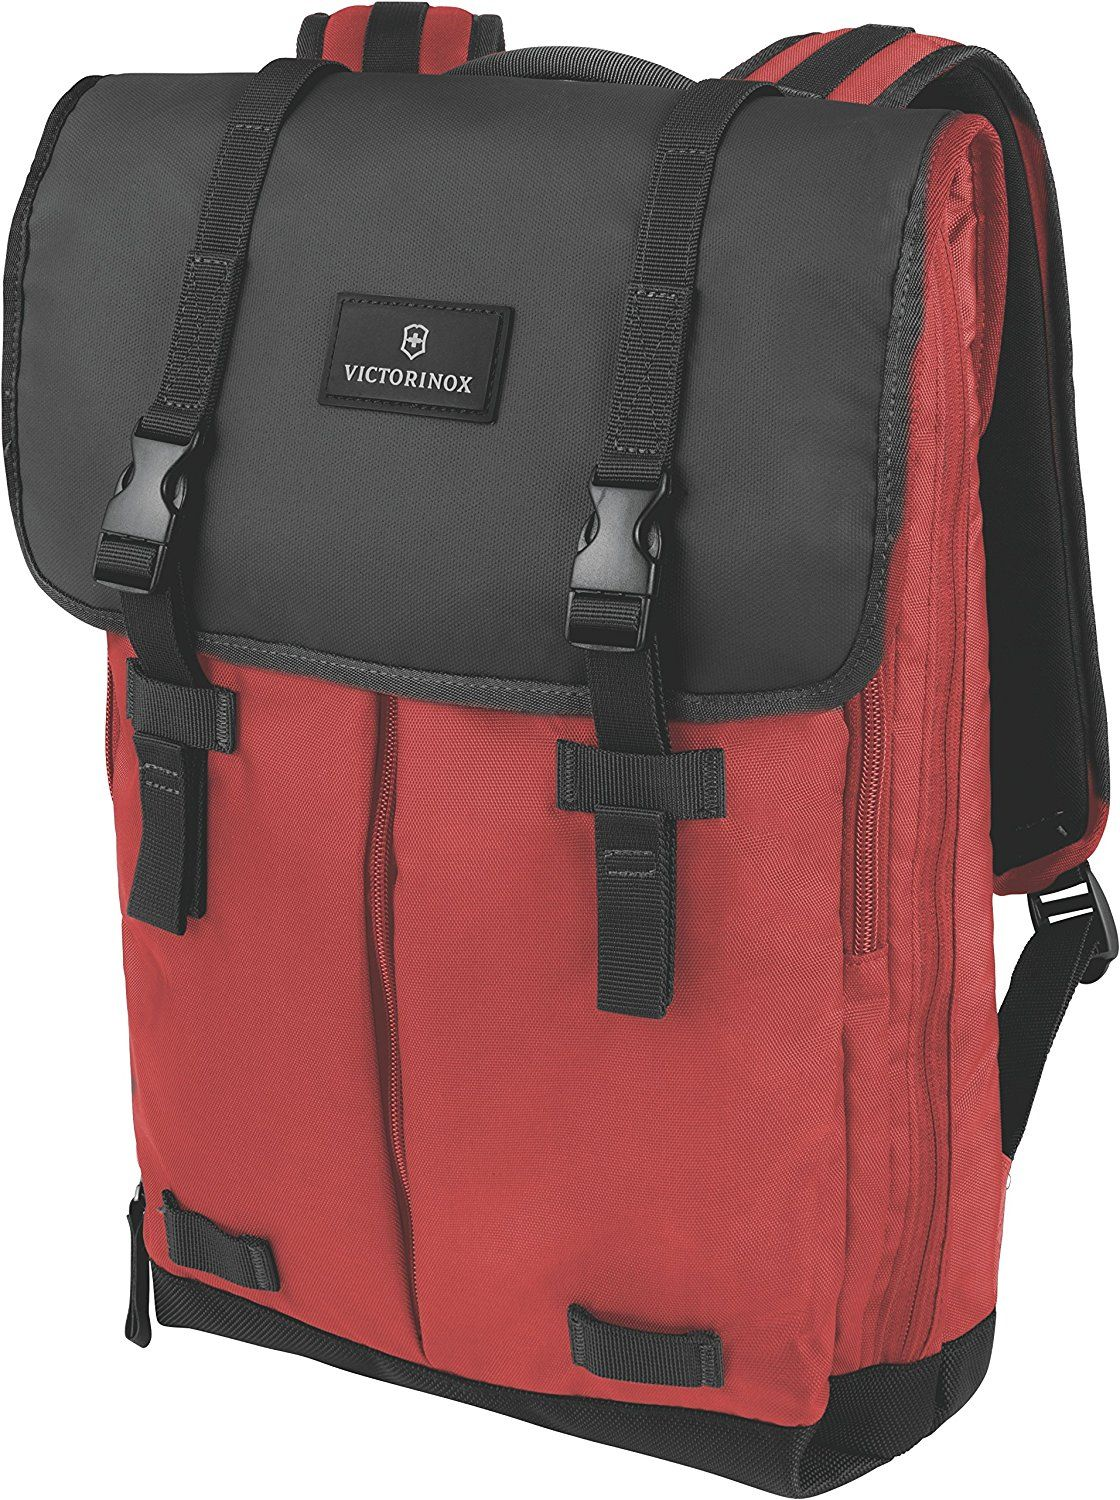 Victorinox Laptop Backpack One Size